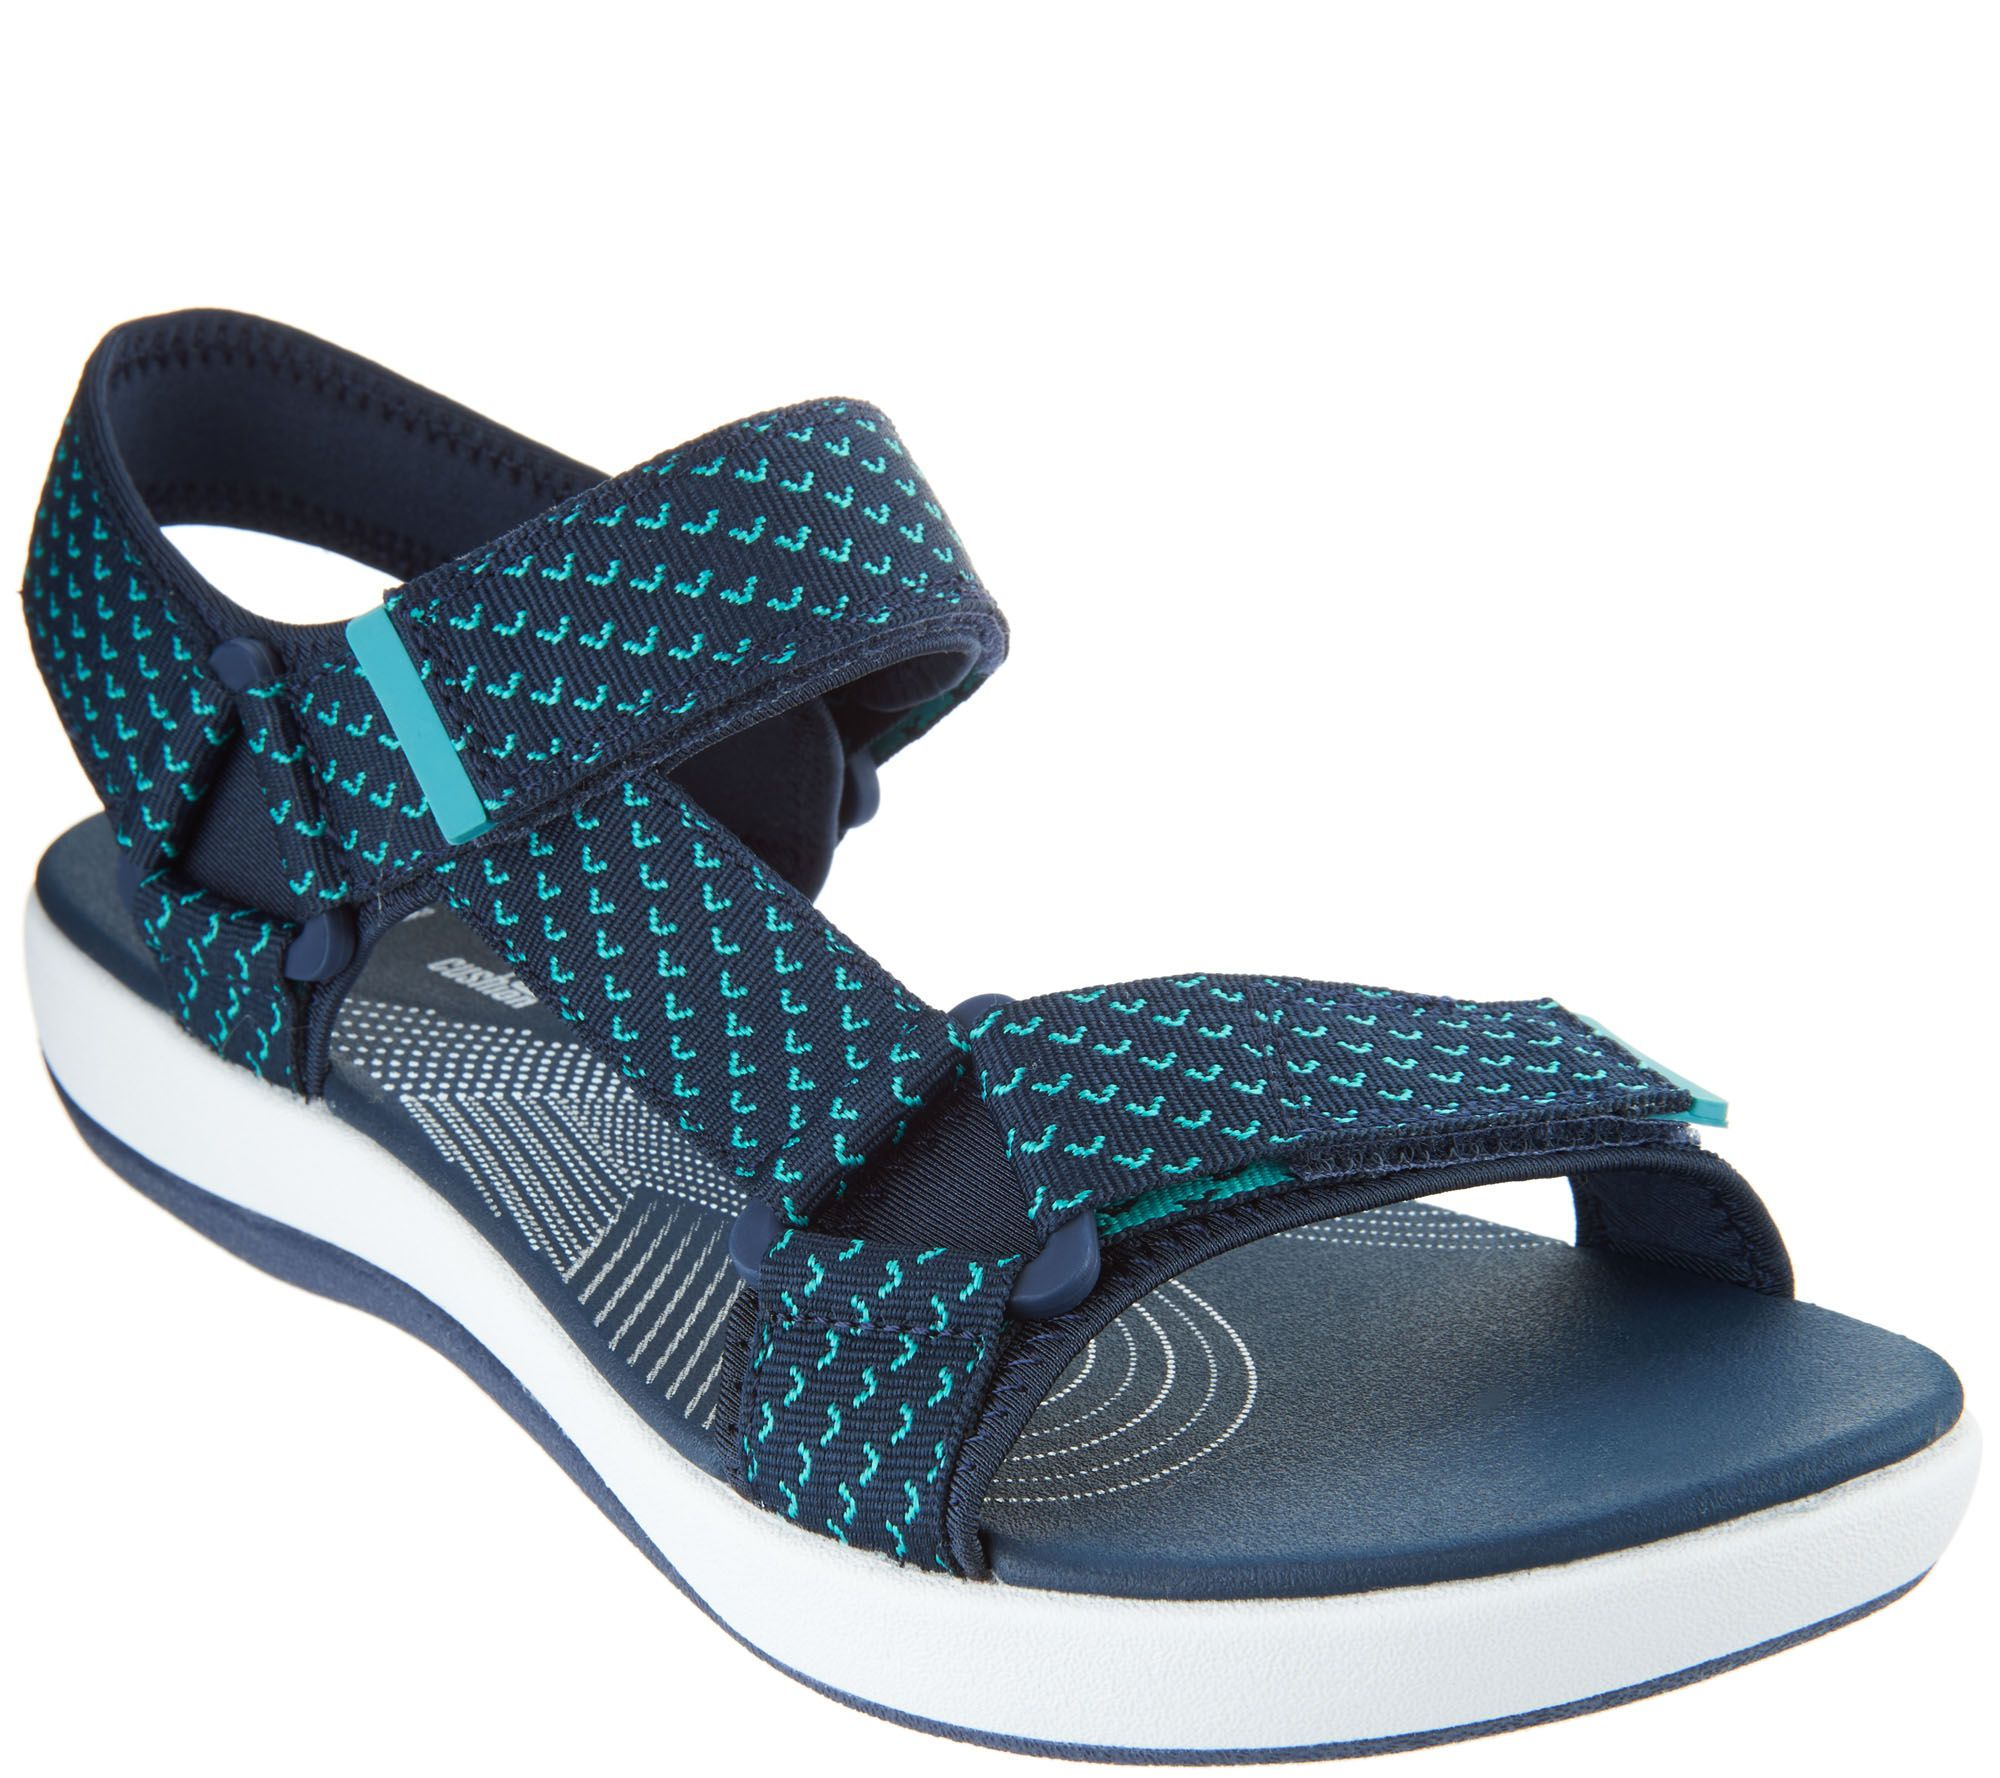 894e438fcc0 CLOUDSTEPPERS by Clarks Adjustable Sport Sandals - Brizo Cady - Page 1 —  QVC.com